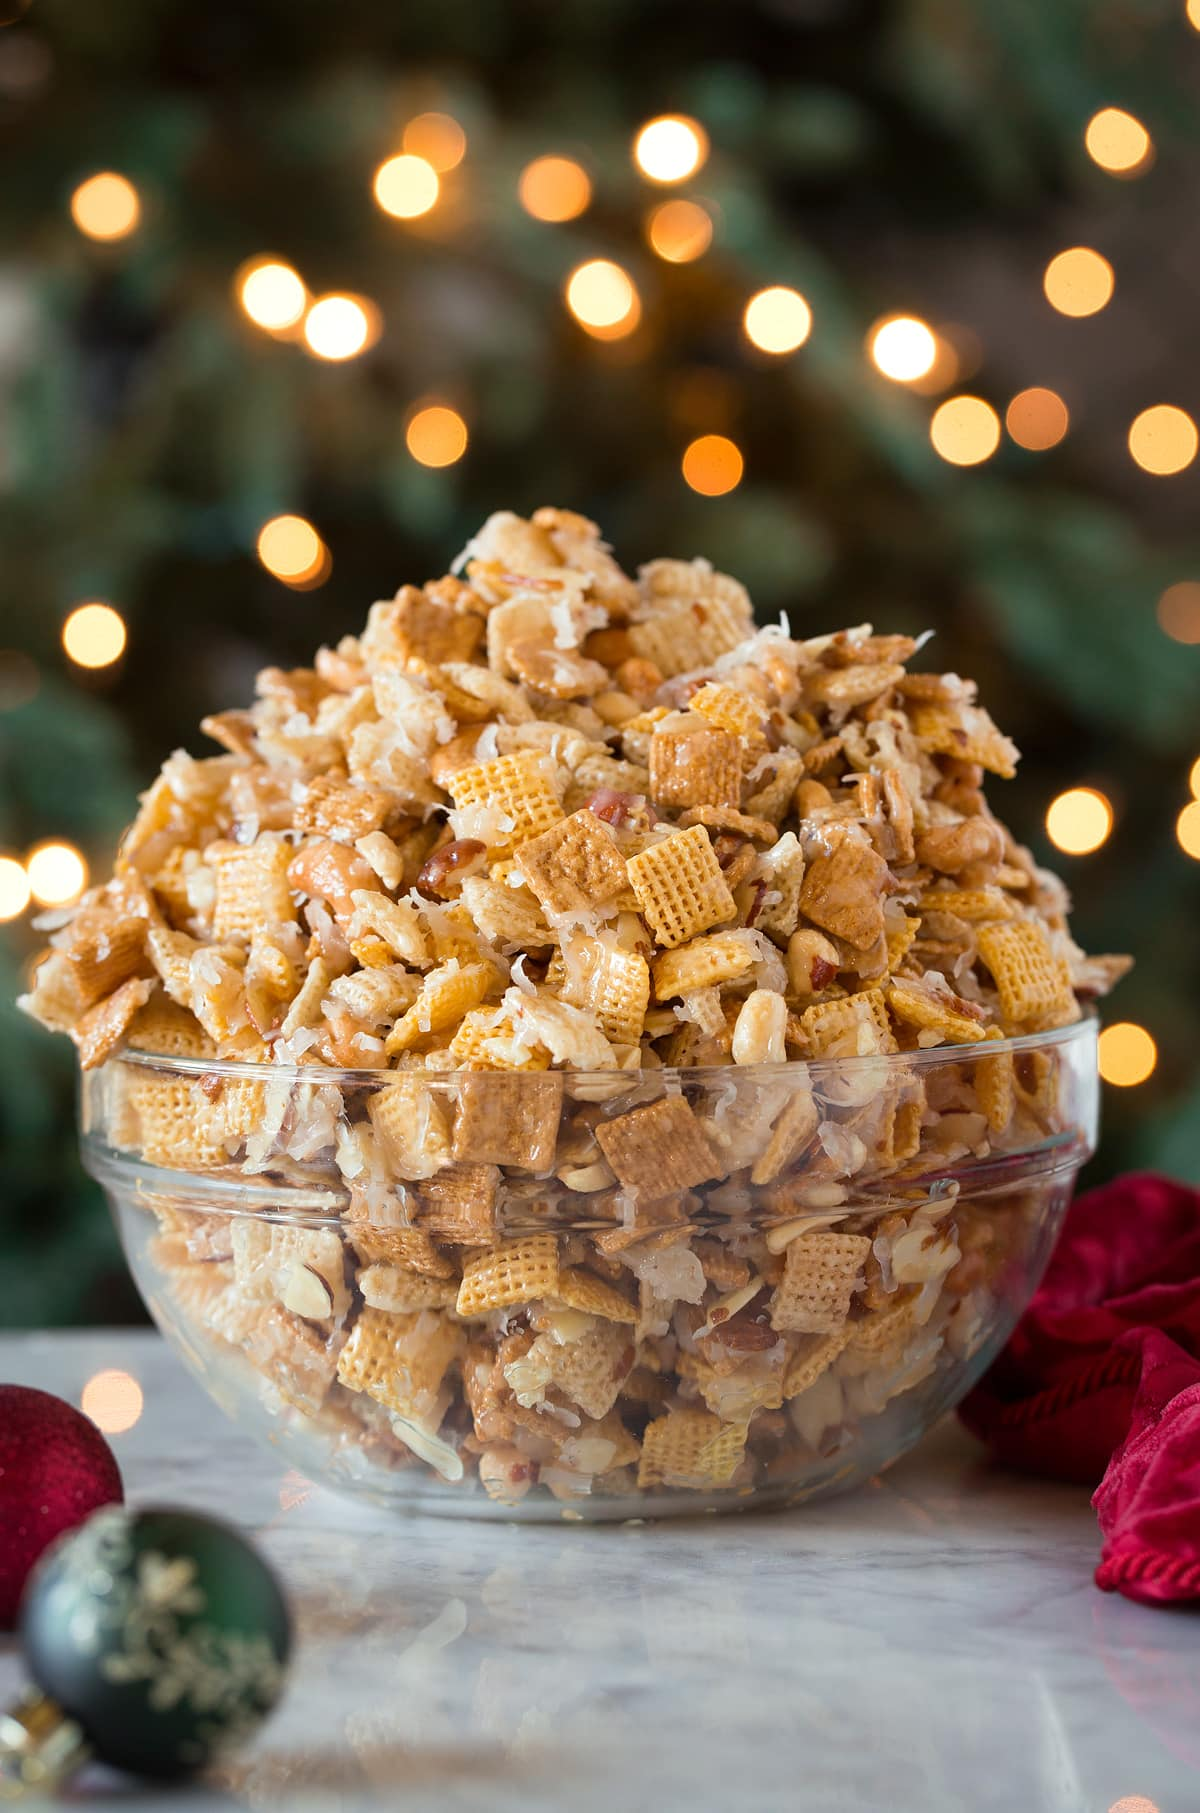 Sweet Chex Mix in front of a Christmas tree in a glass bowl.